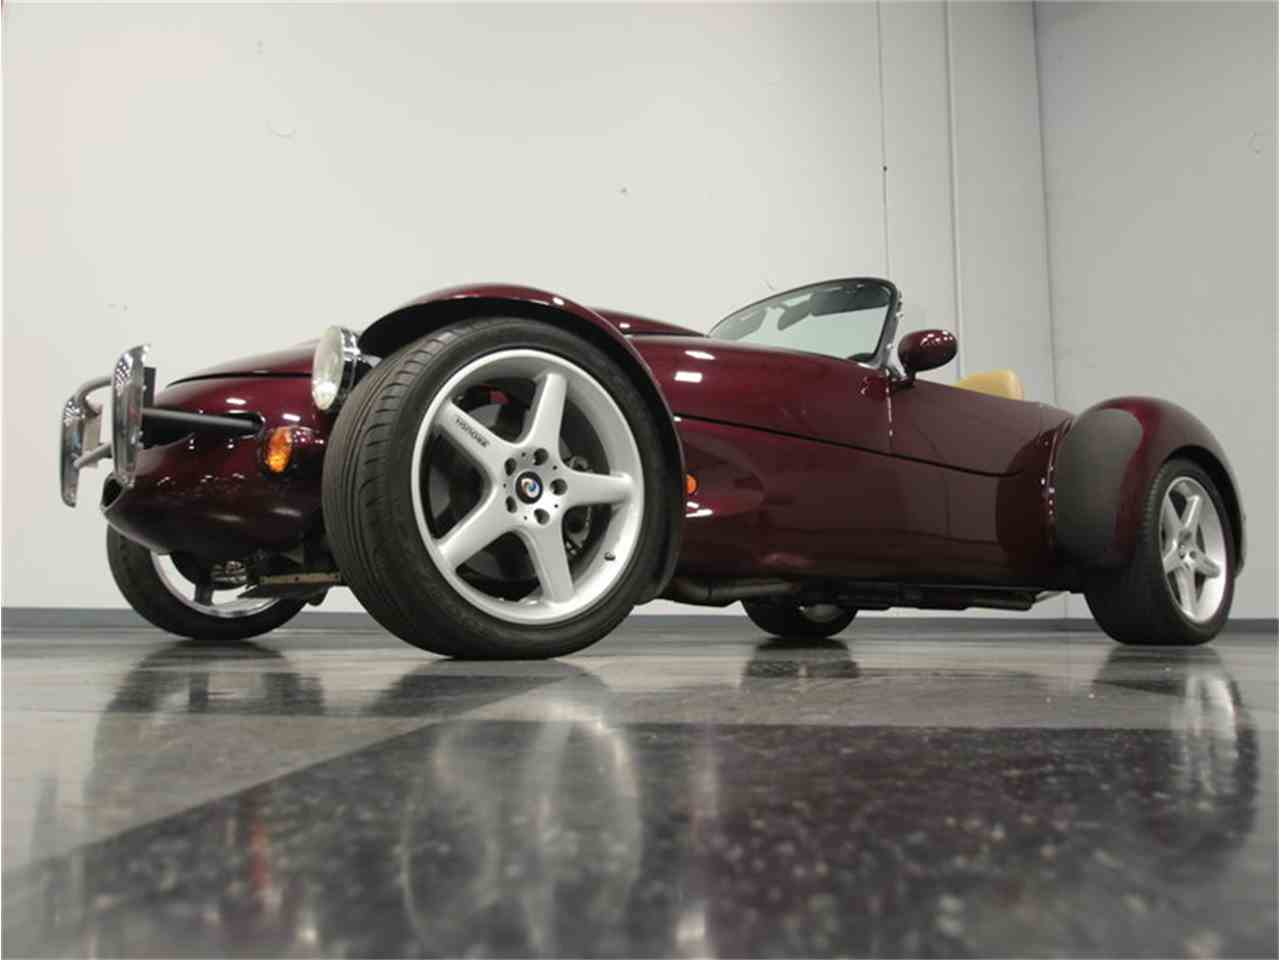 Large Picture of 1998 AIV Roadster Supercharged located in Lithia Springs Georgia - $41,995.00 - JPDH